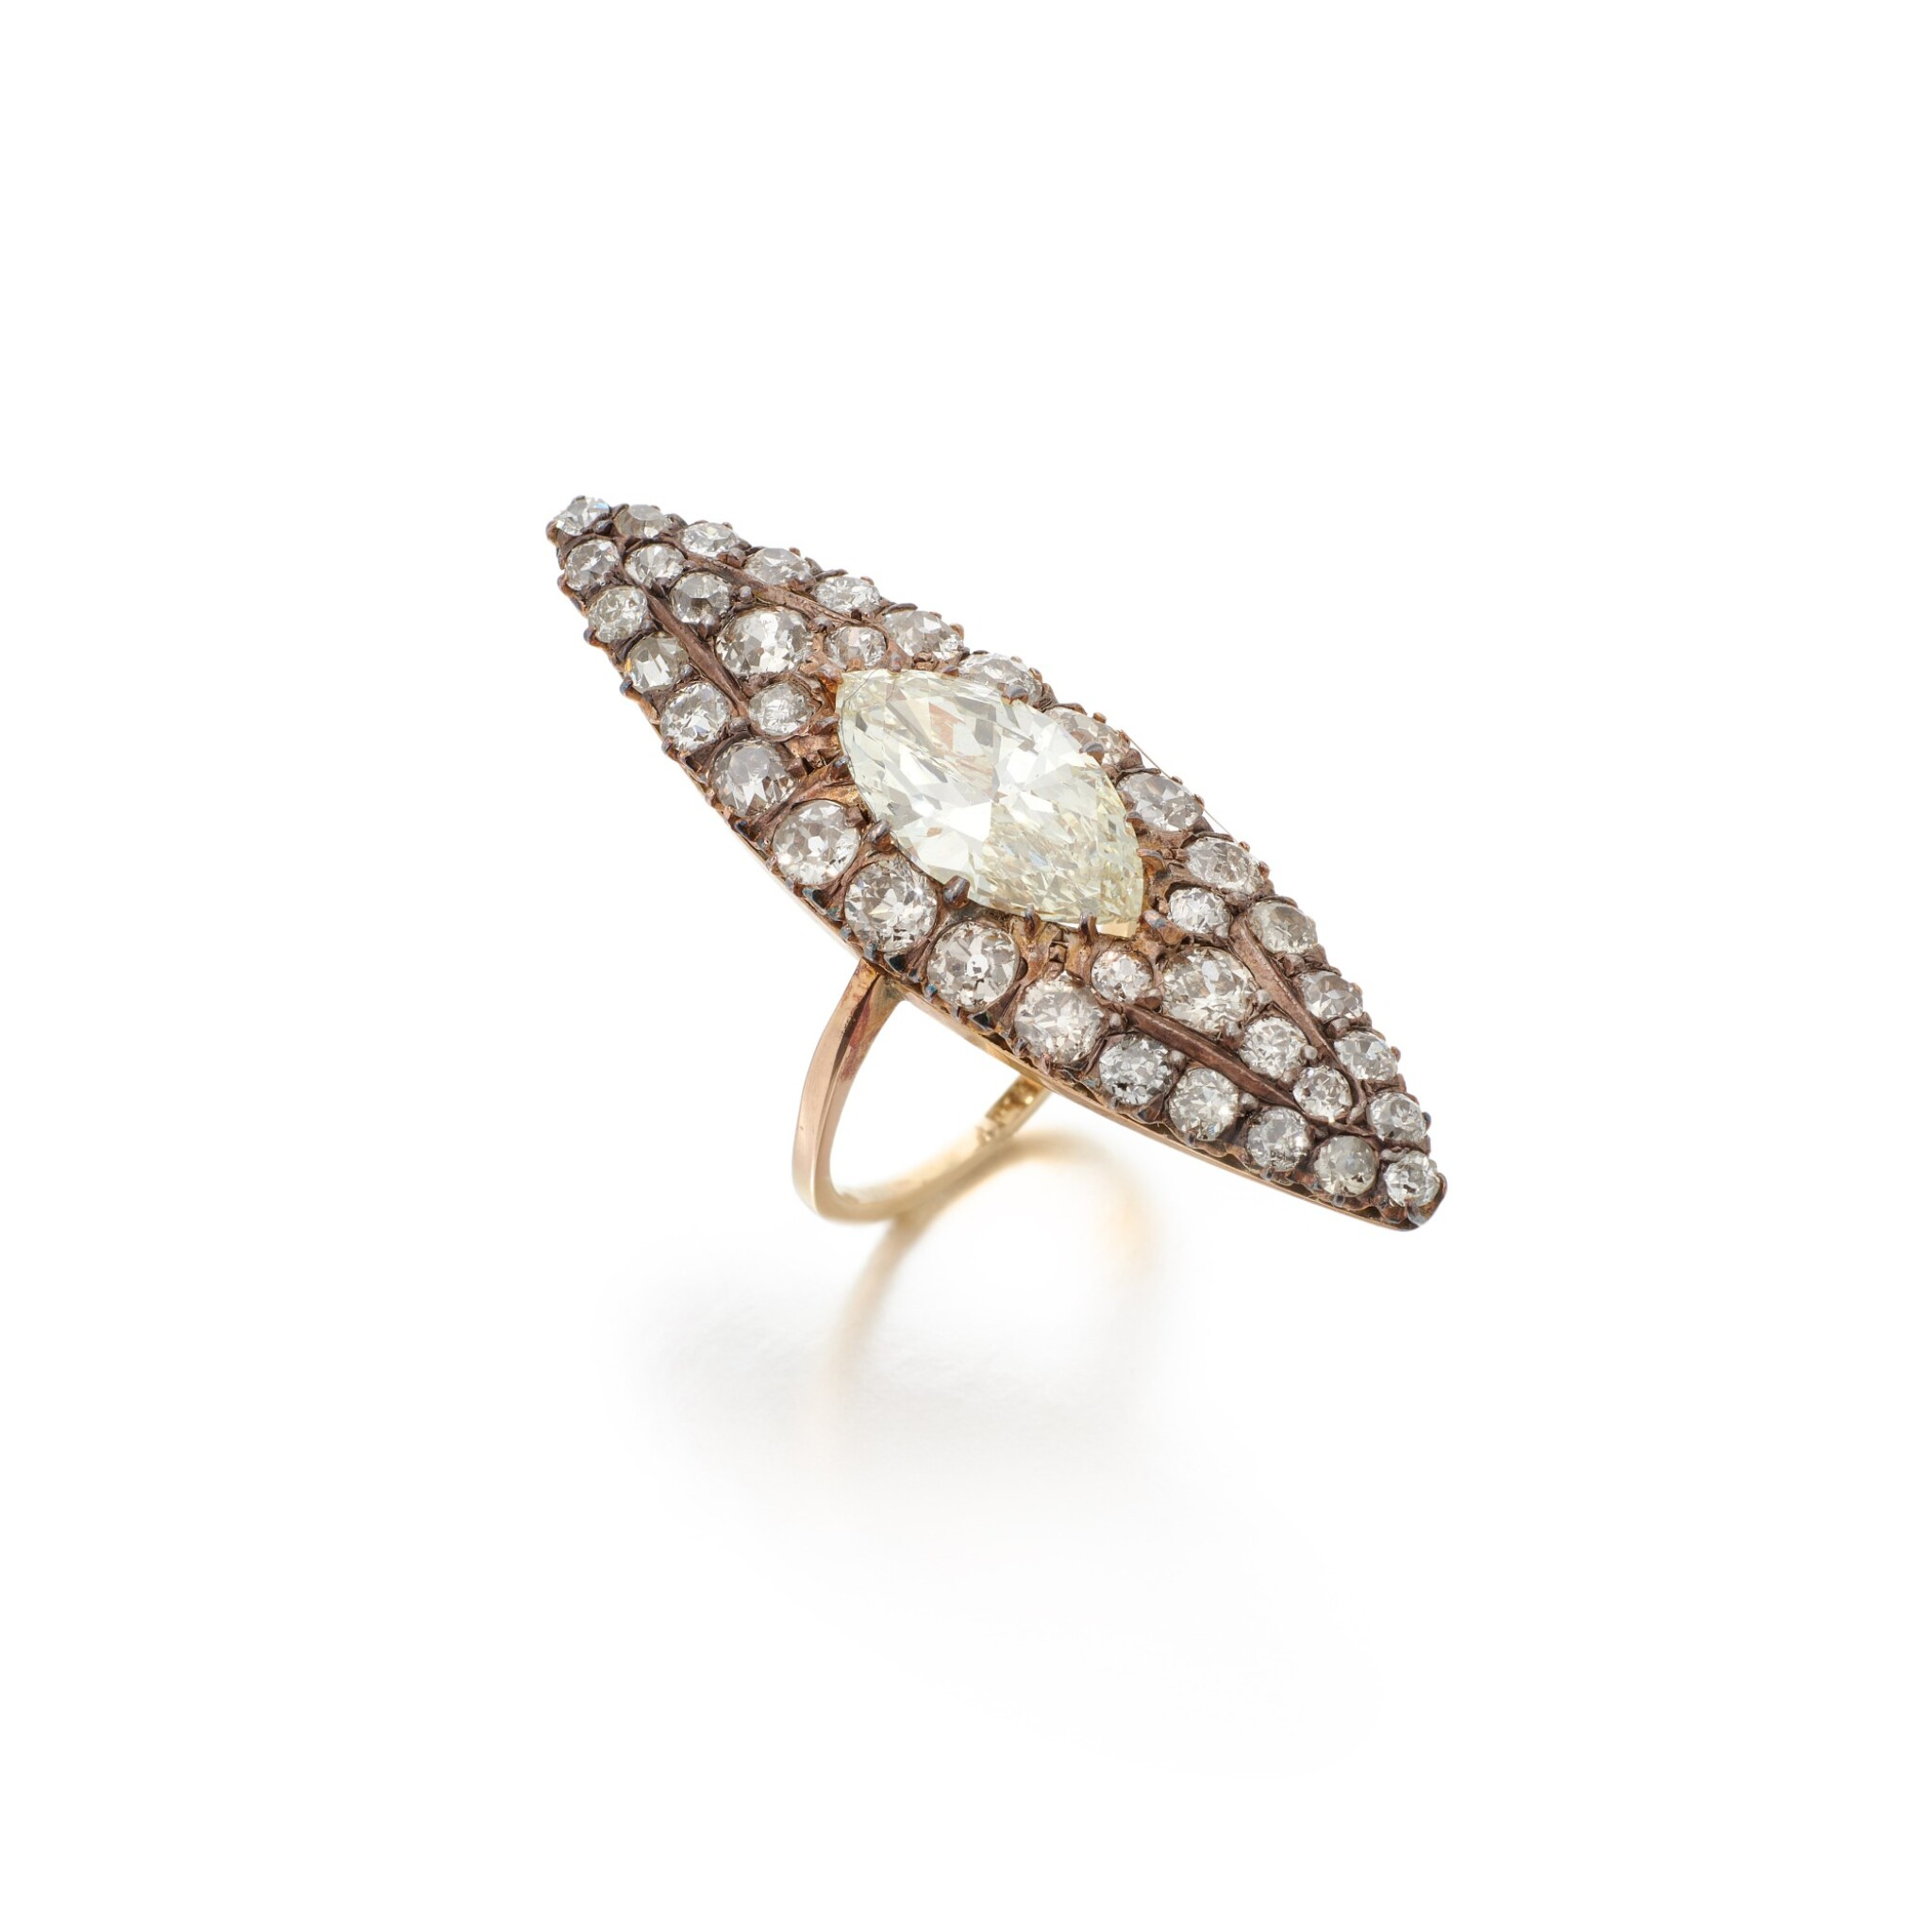 DIAMOND RING   (ANELLO IN DIAMANTI), 1900